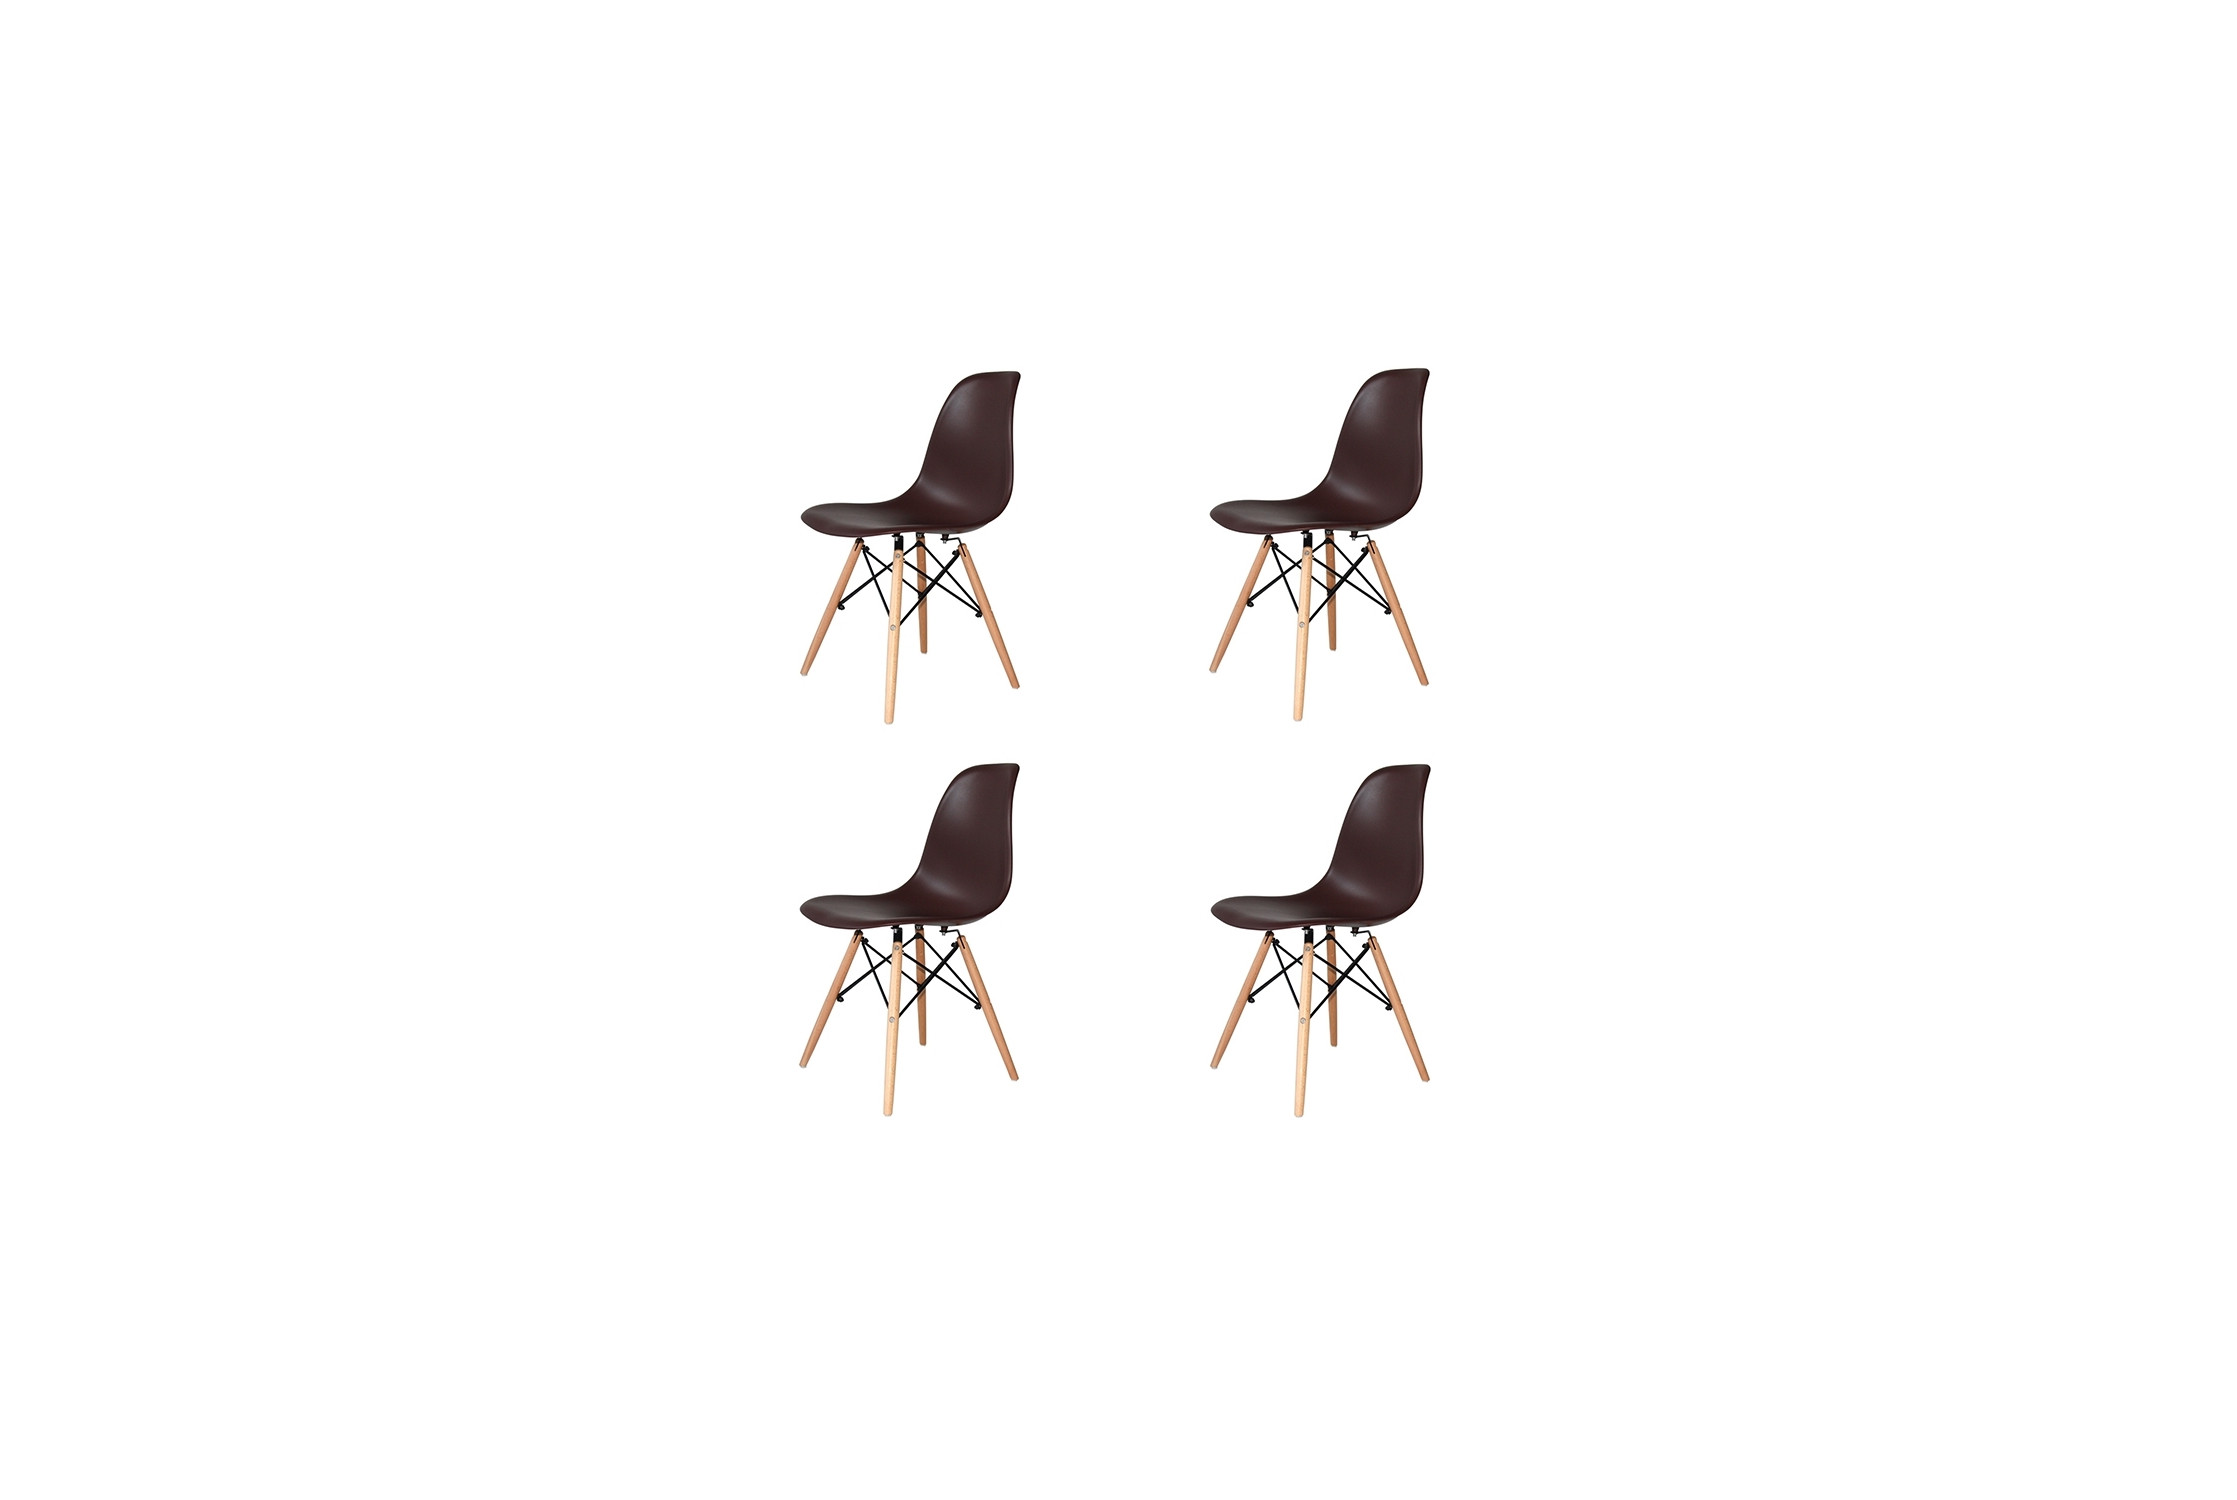 PACK 4 CHAISES TOWER WOOD CHOCOLAT EXTRA QUALITY